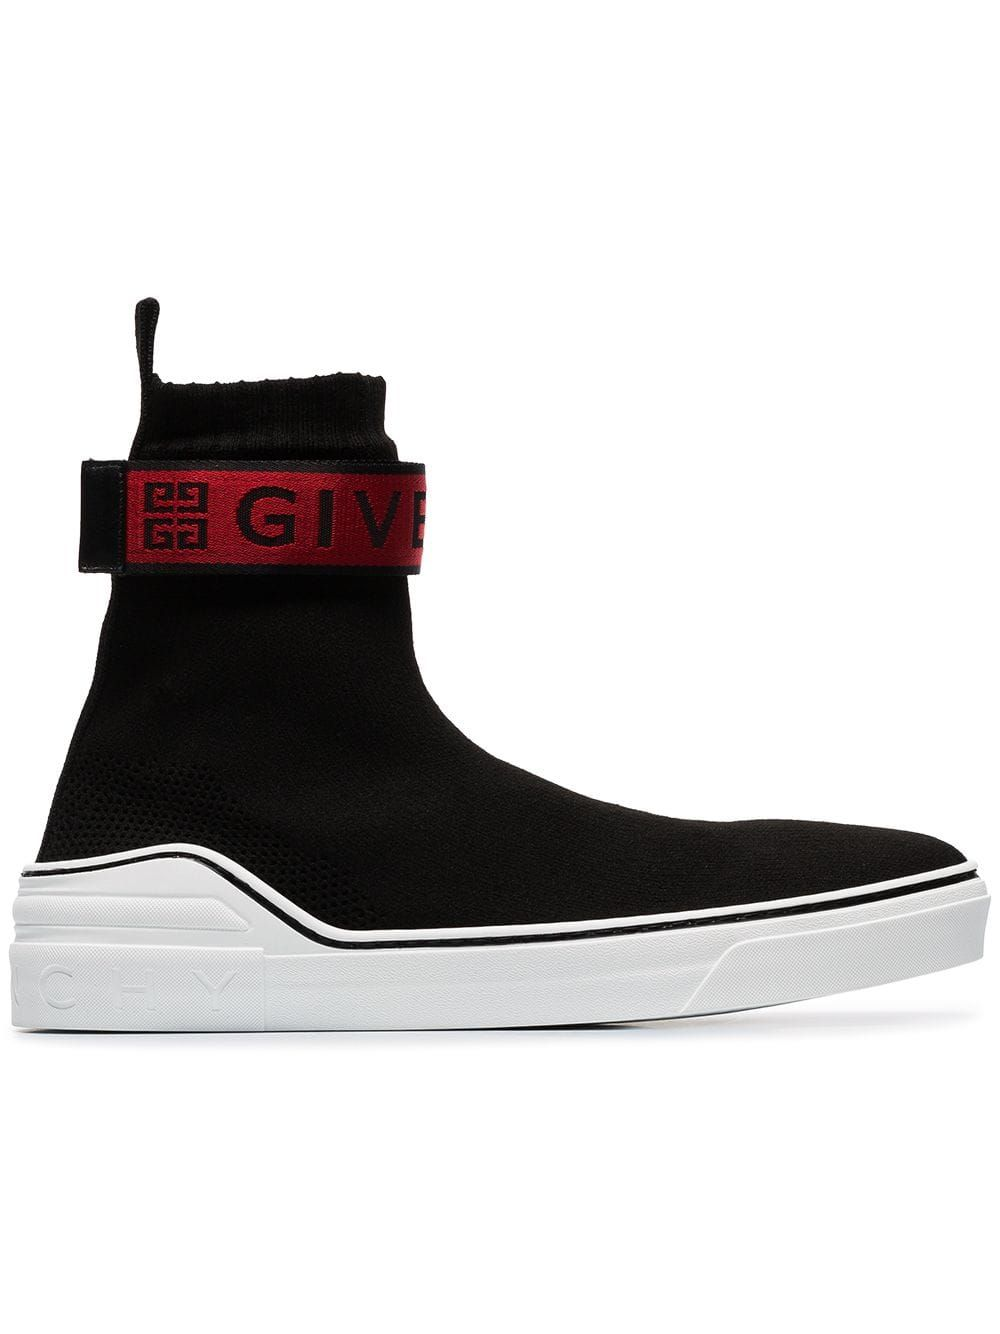 GIVENCHY GIVENCHY BLACK, RED AND WHITE 4G WEBBING KNITTED